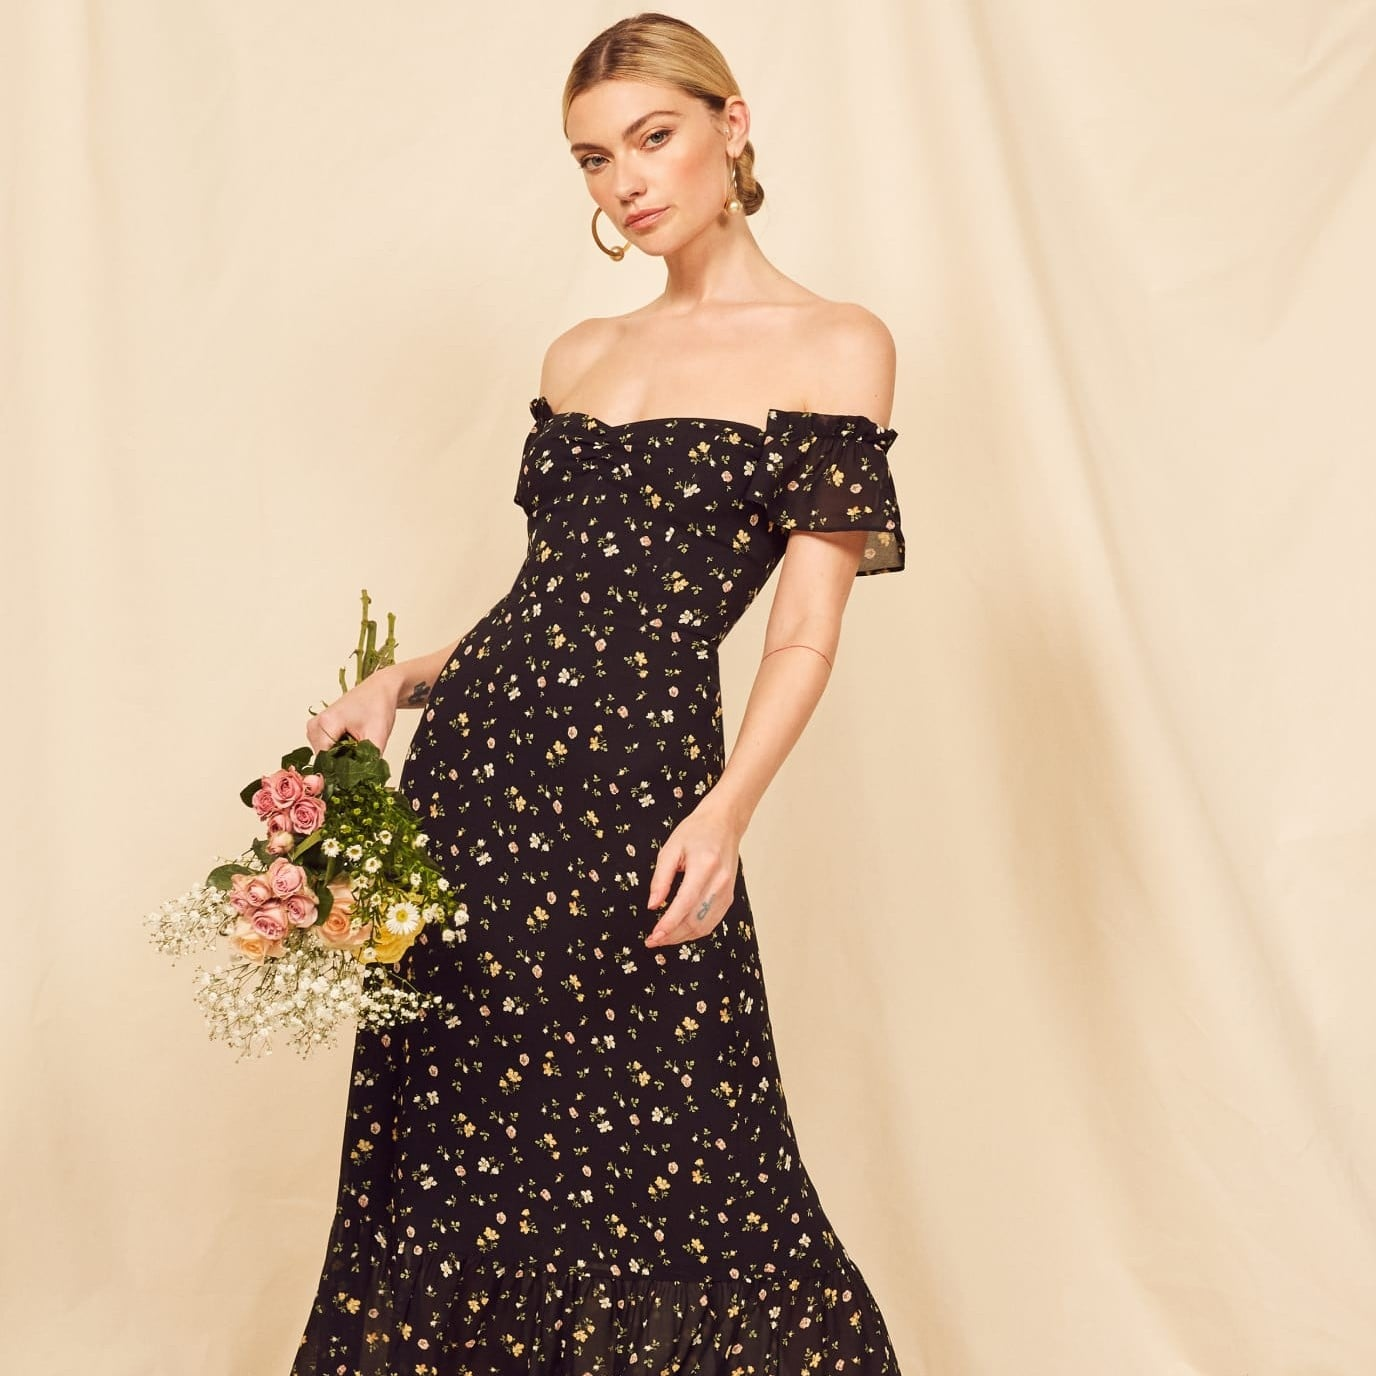 Best Wedding Guest Dresses From Nordstrom Popsugar Fashion